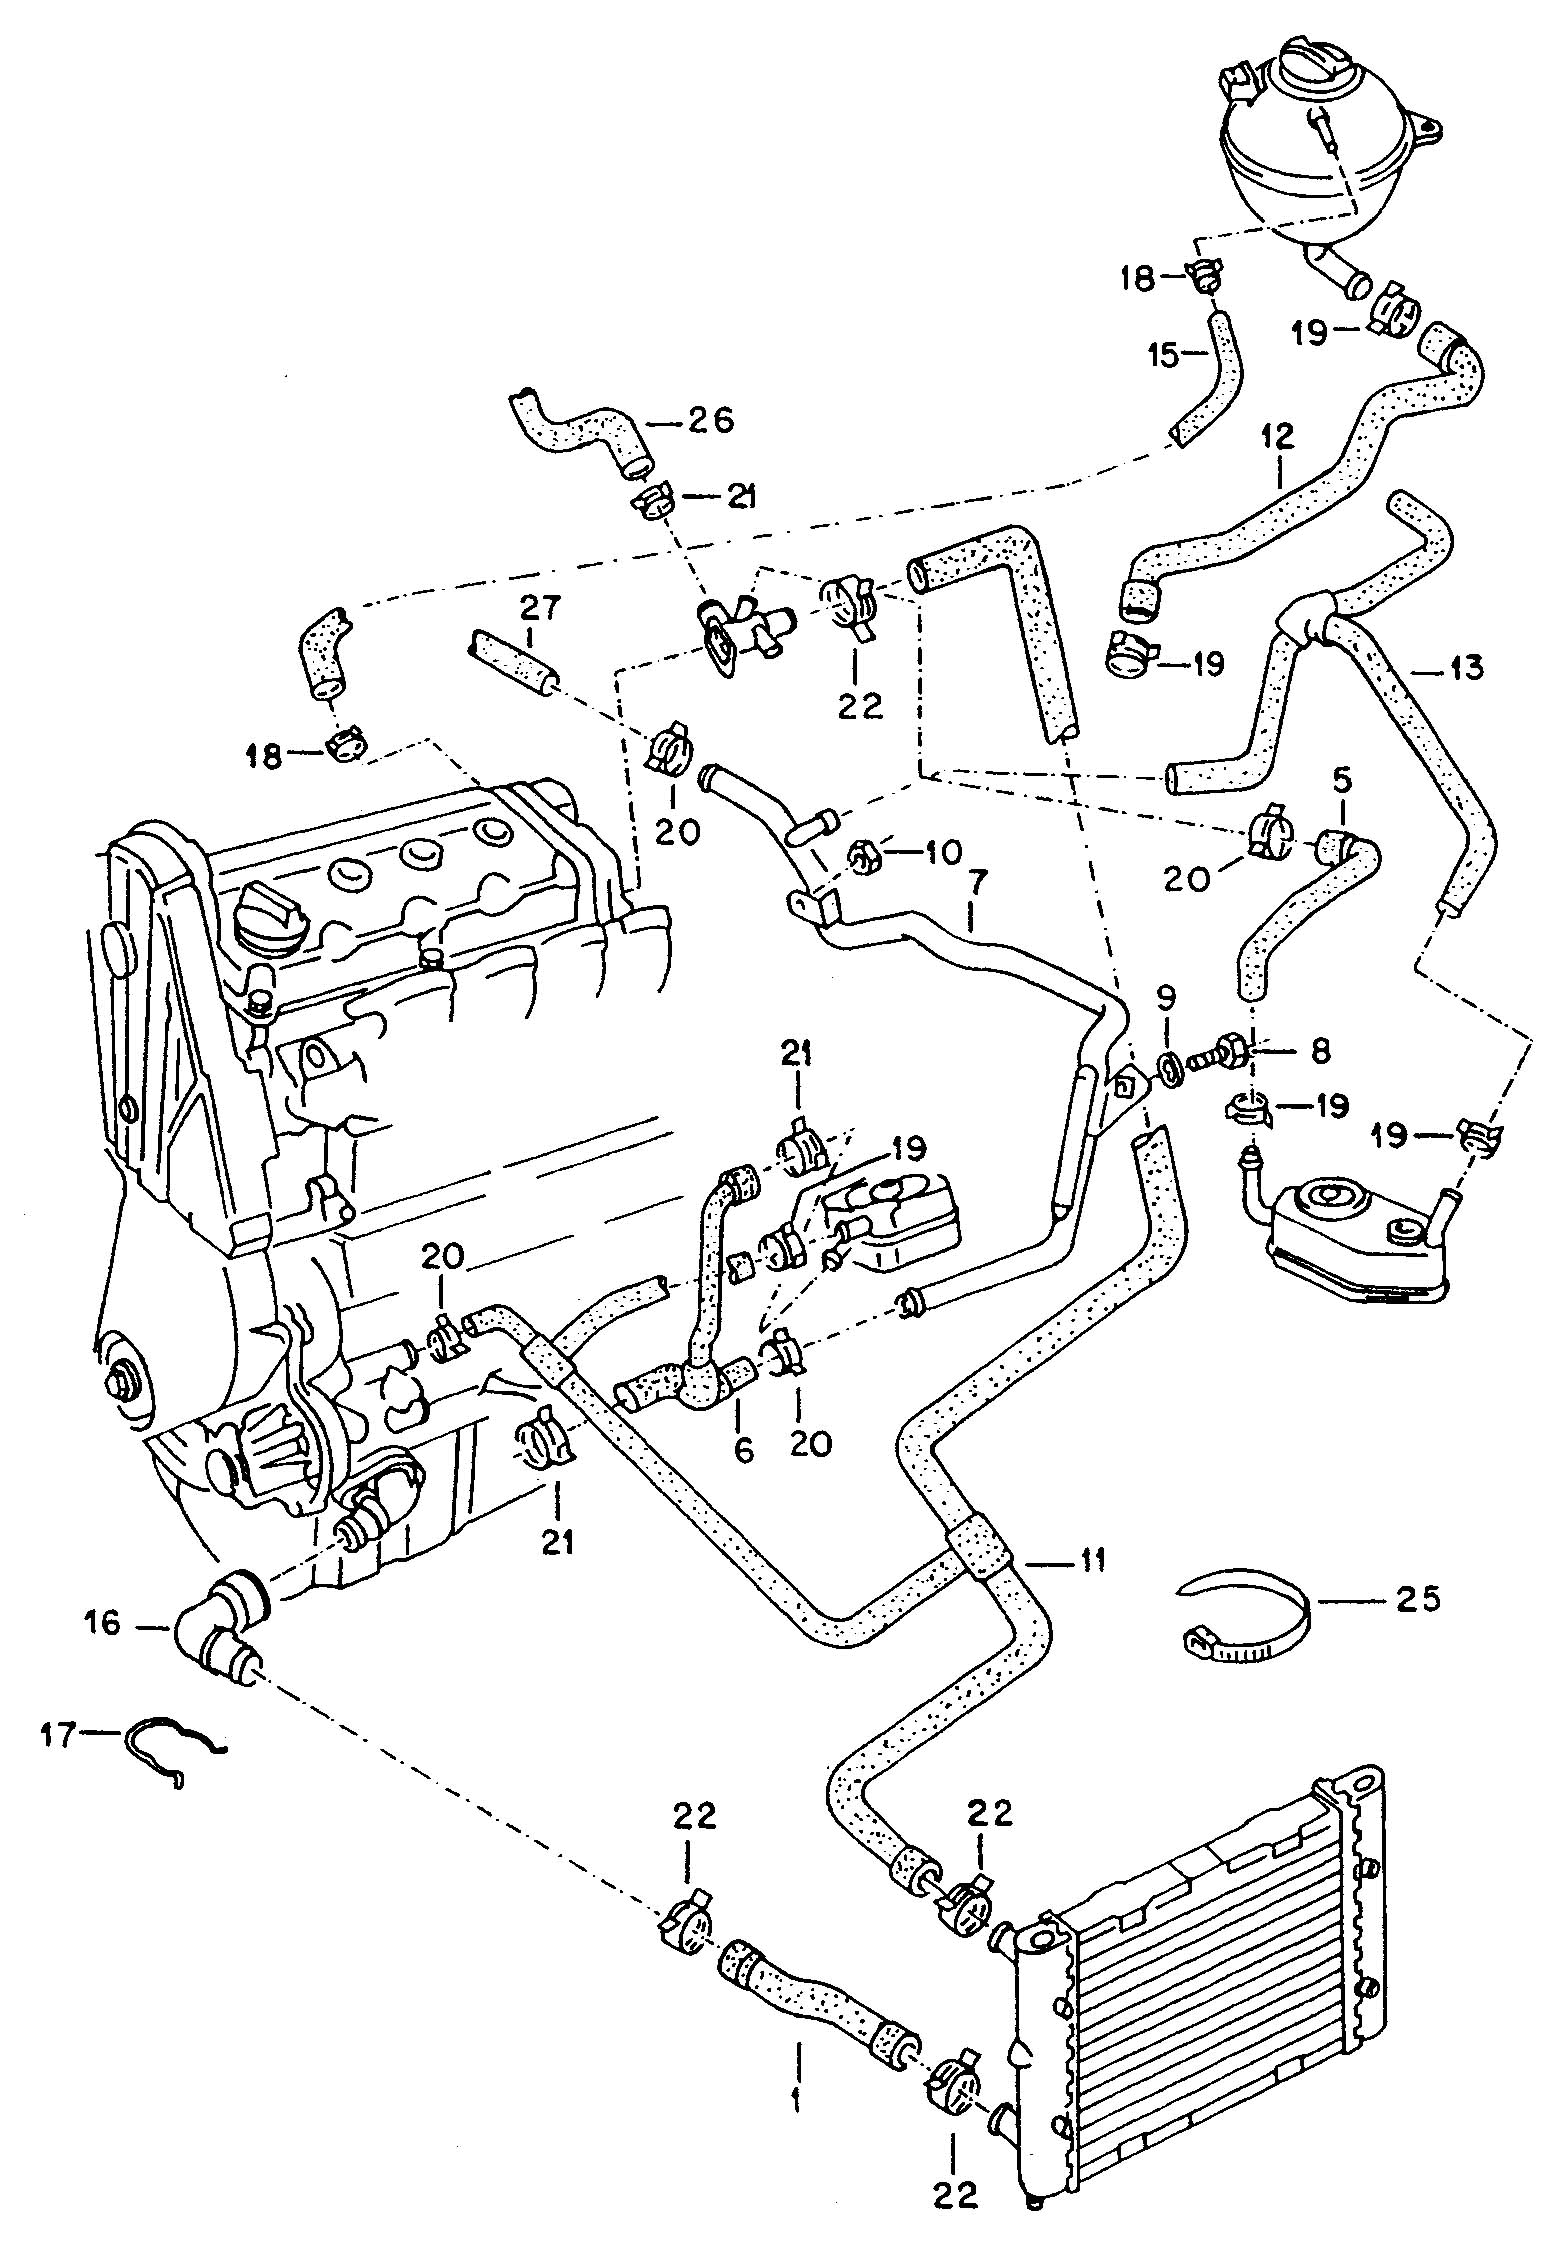 2002 Jetta Cooling System Diagram, 2002, Free Engine Image